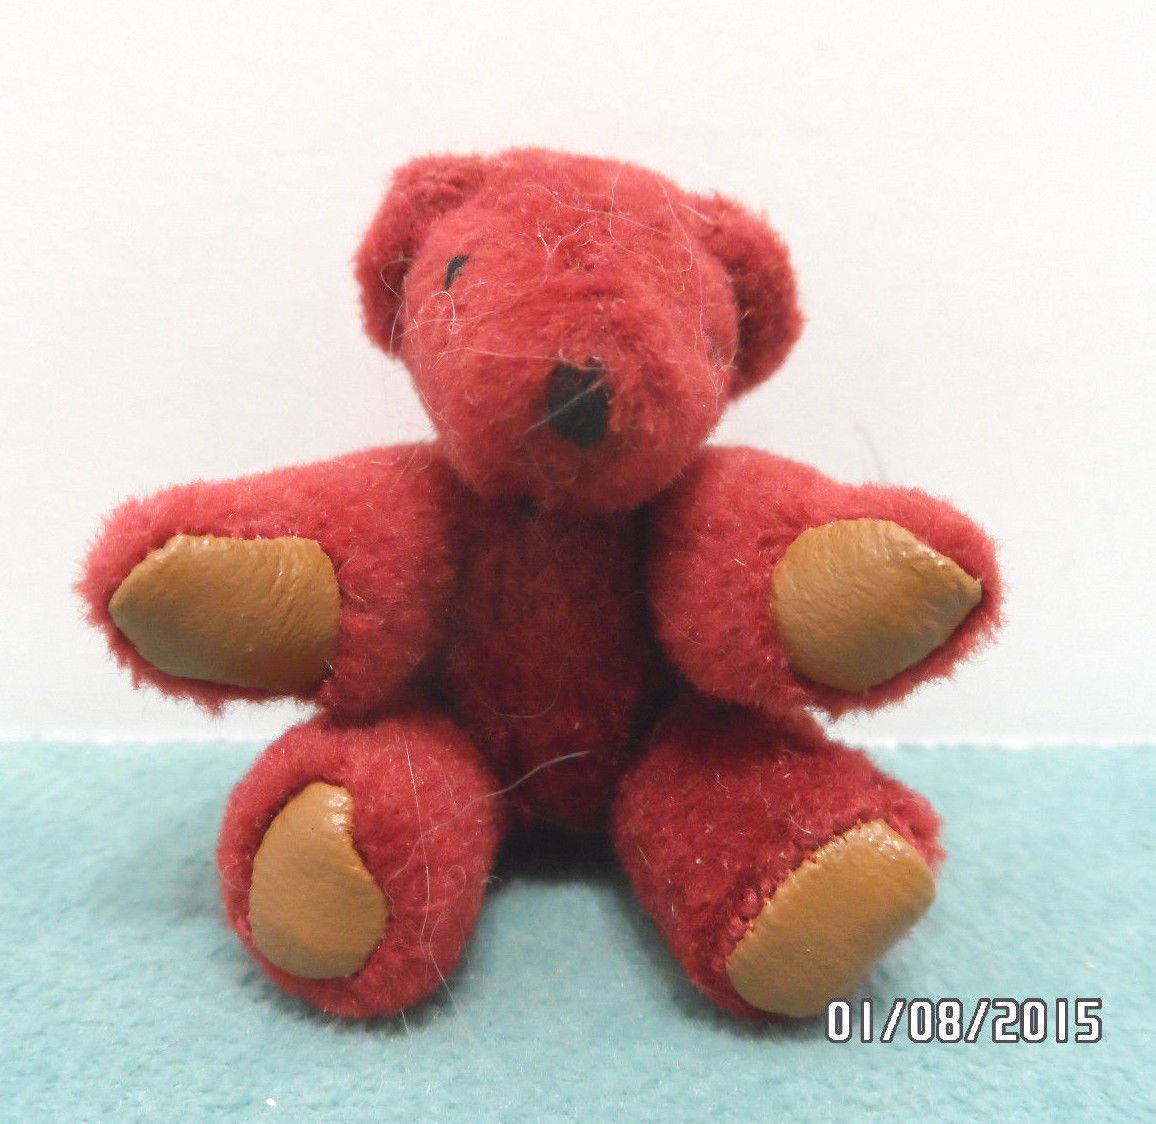 Vintage Teddy Bear Miniature Plum Color with Brown Vinyl Pads Fully Jointed